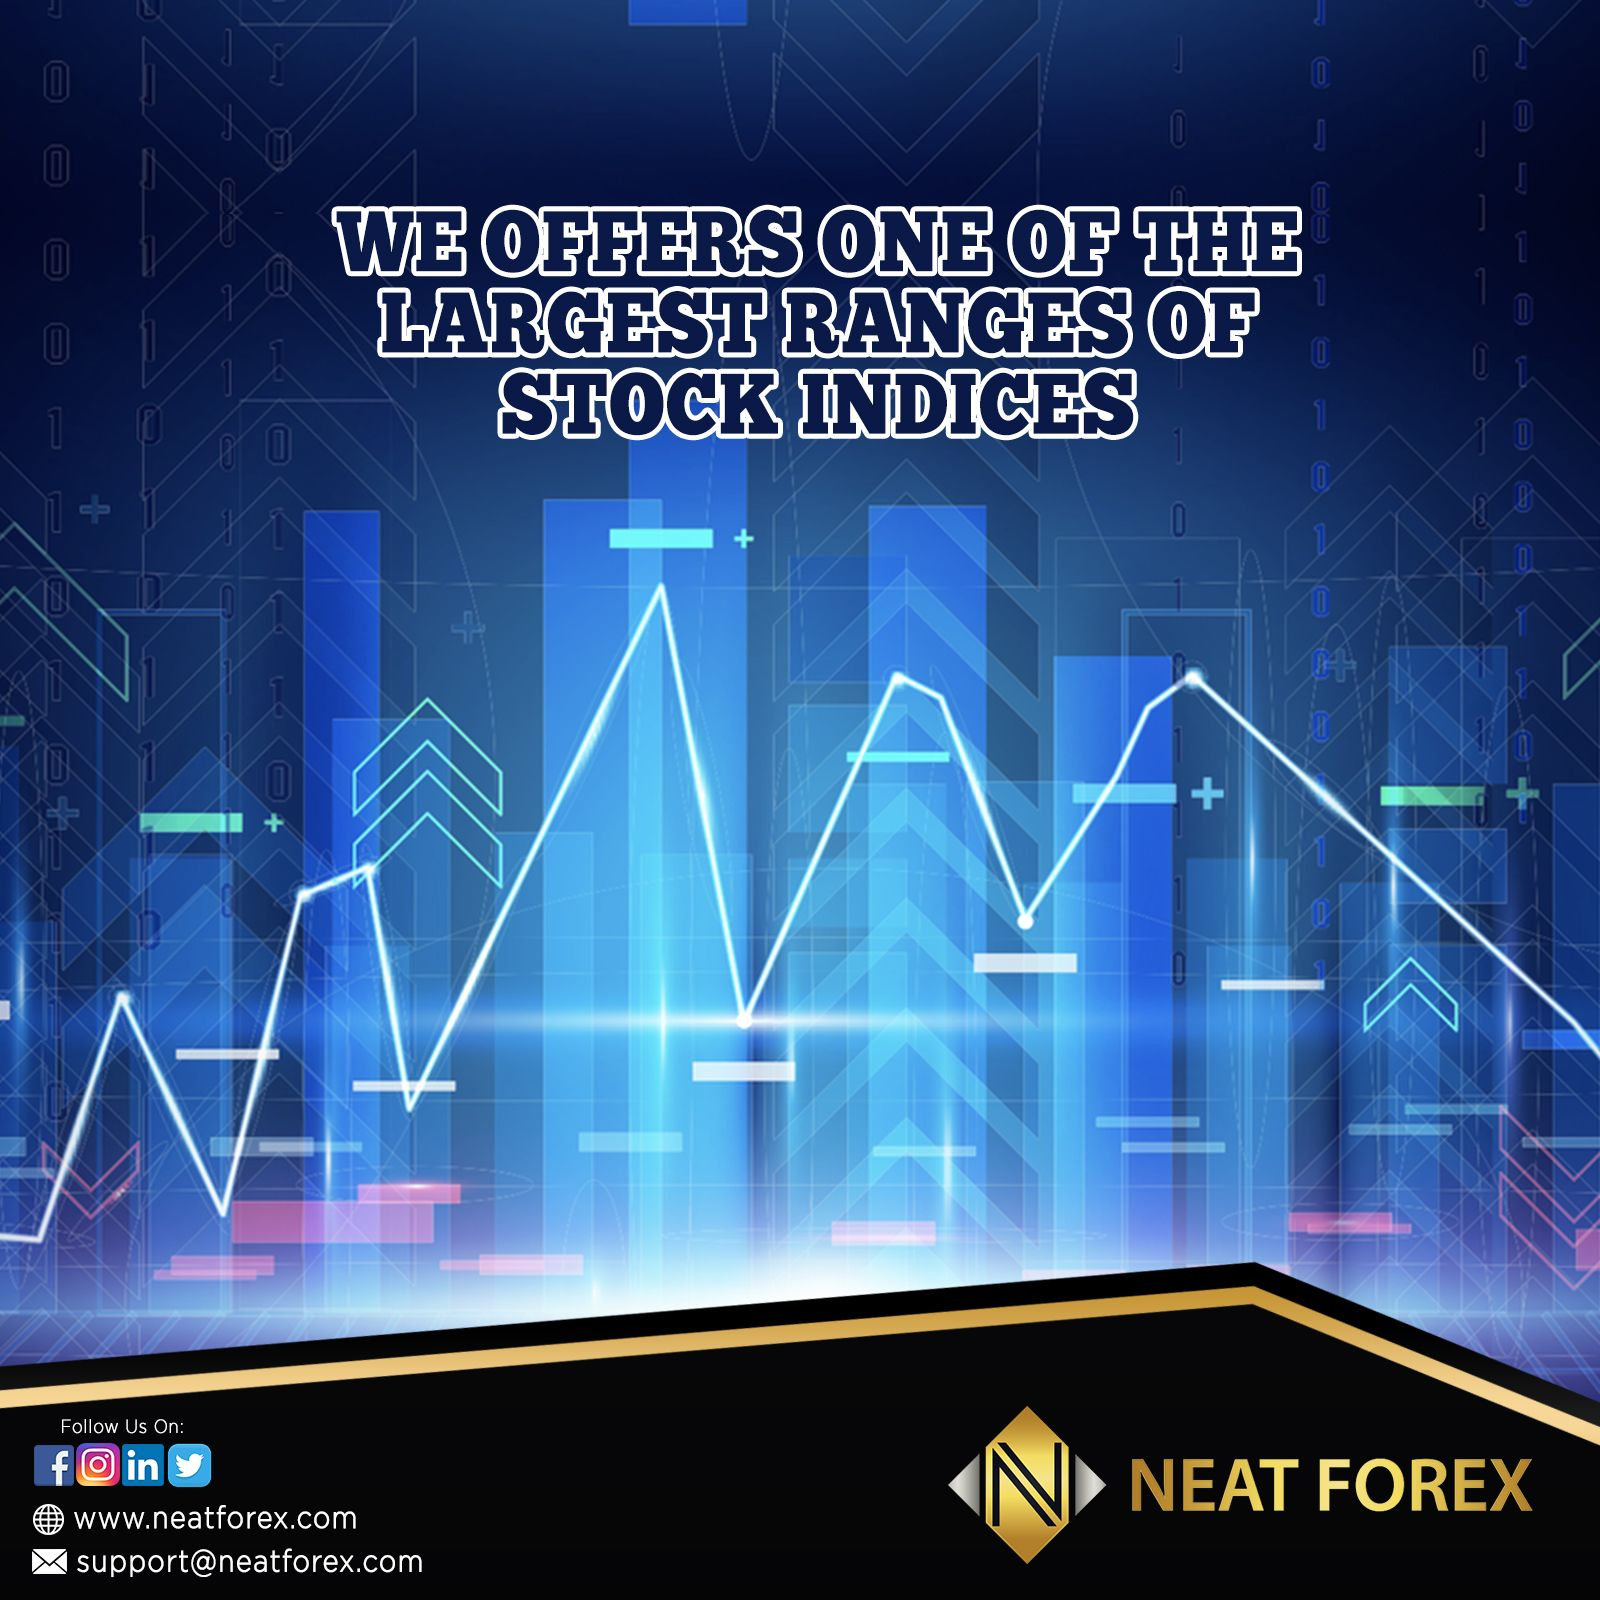 Neat Forex Offers One Of The Largest Ranges Of Stock Indices Of